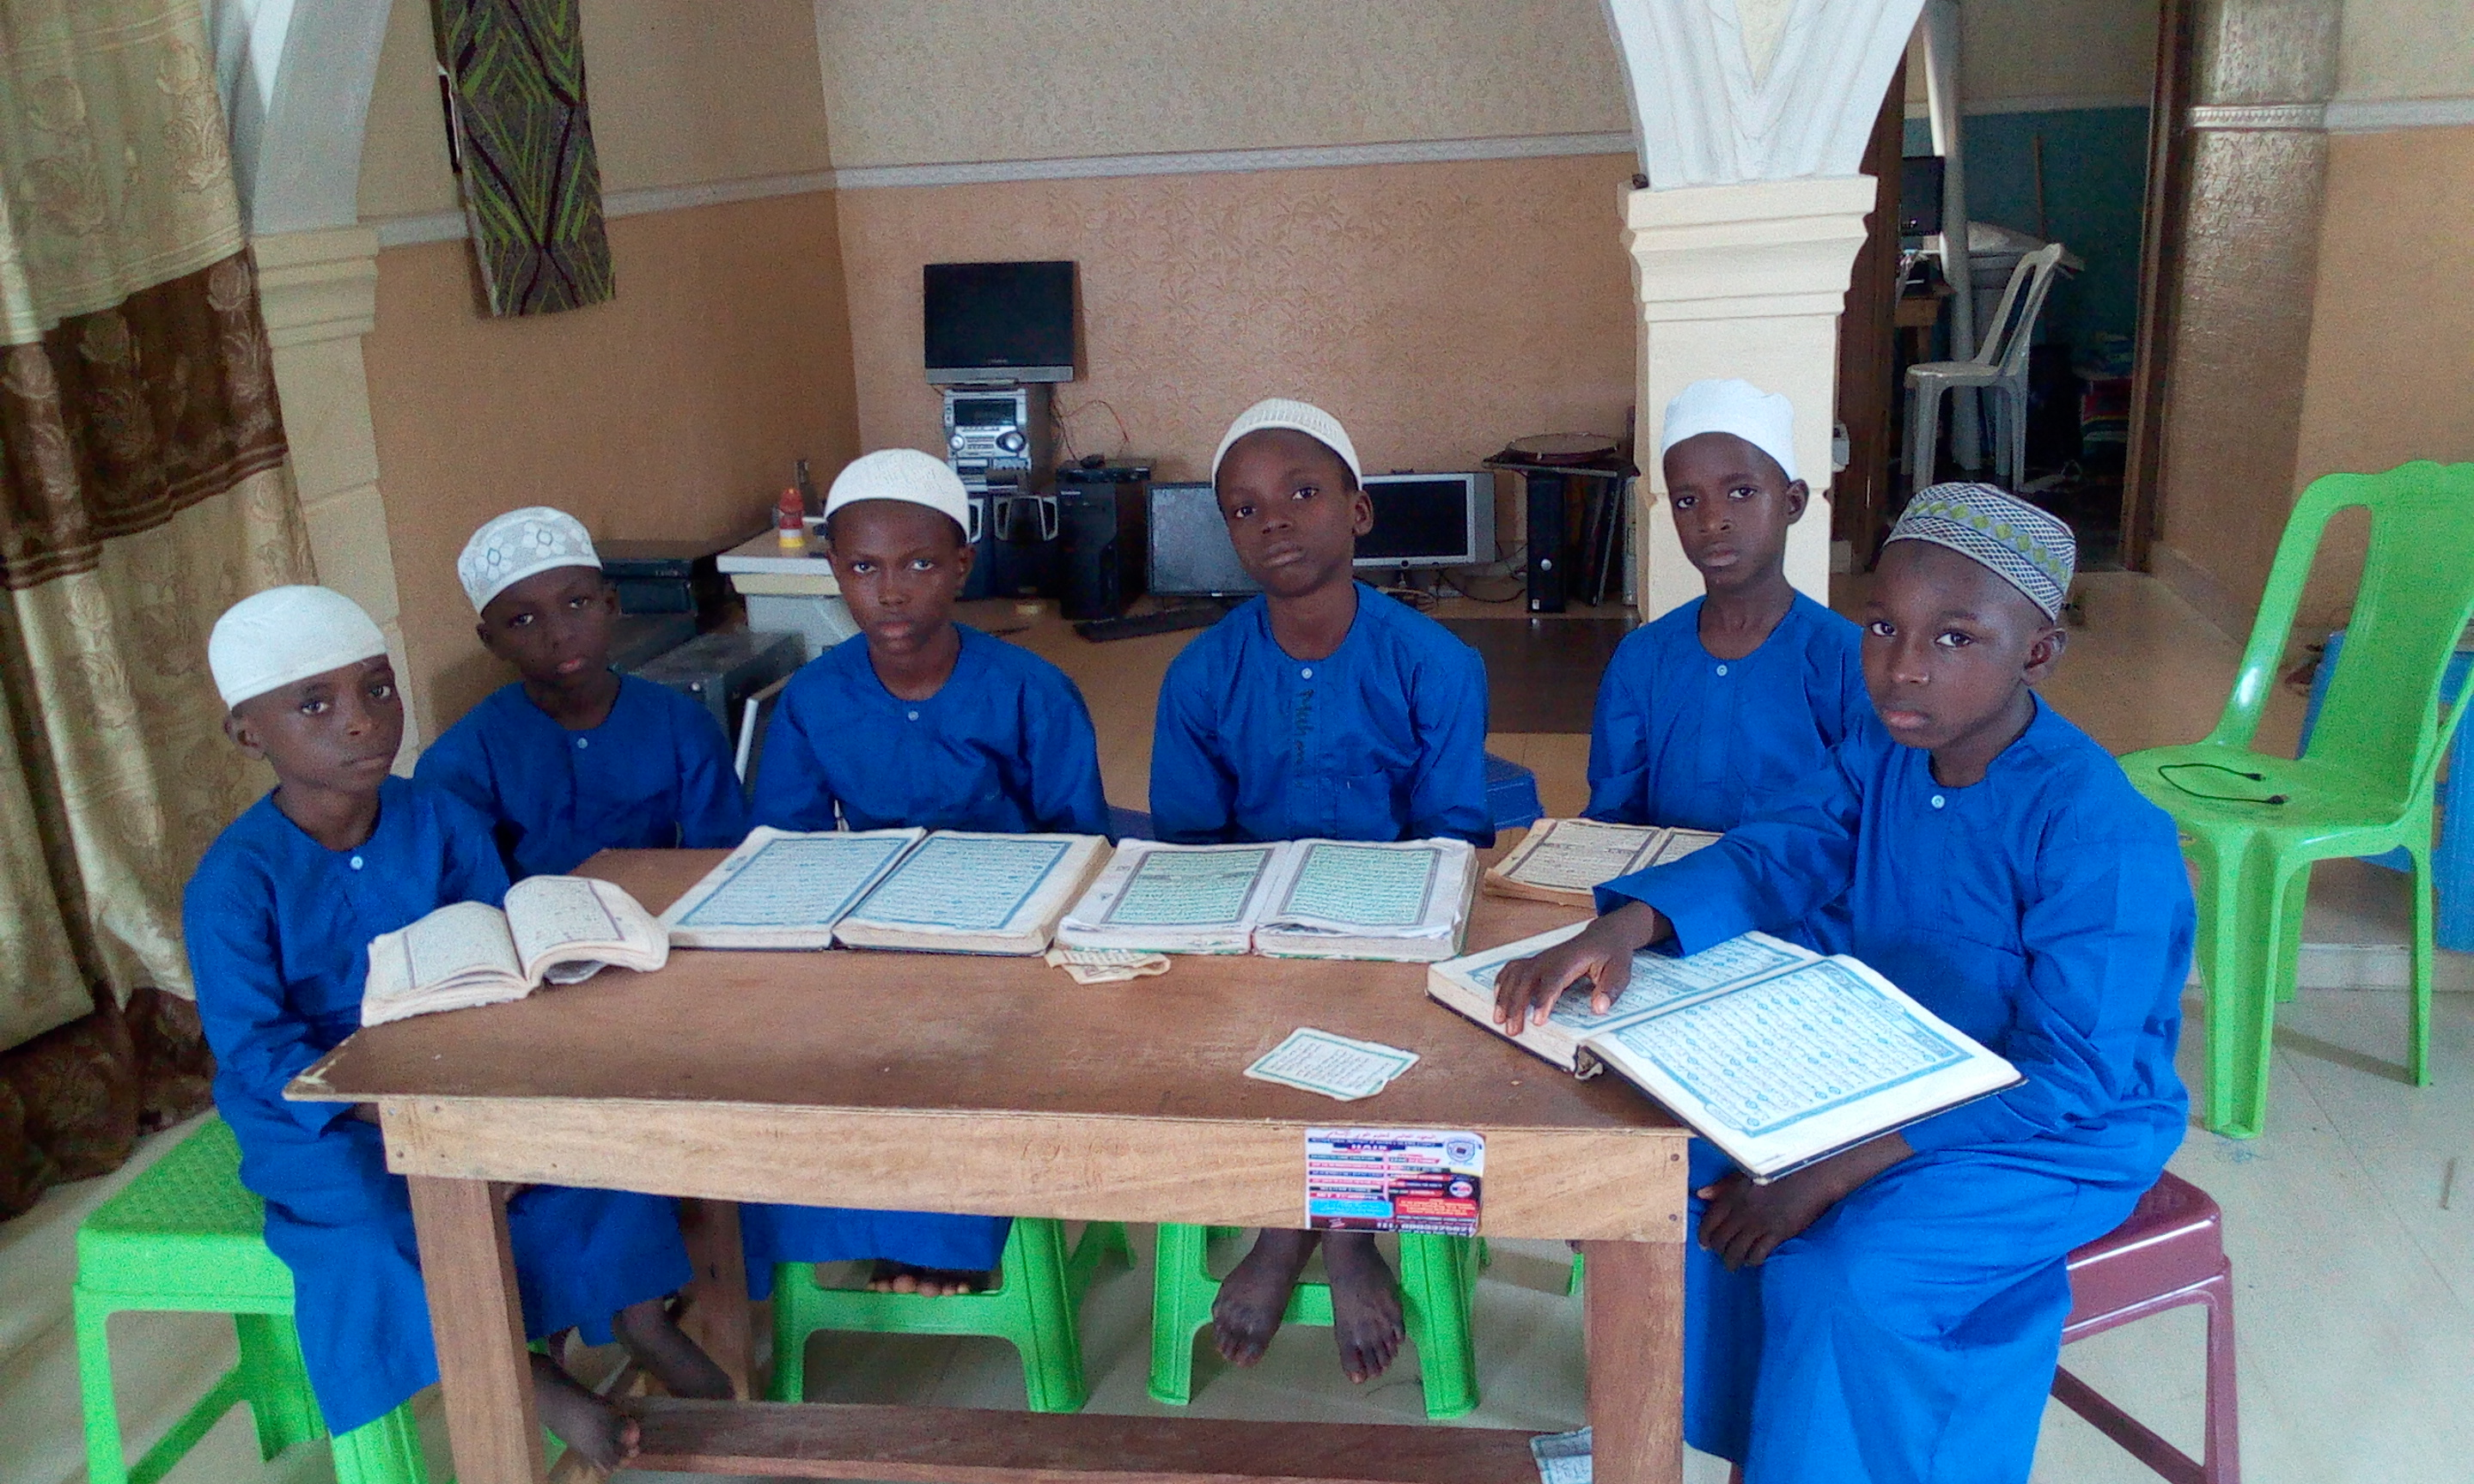 STUDENTS ARE REVISING THEIR QUR'AN IN THE HOSTEL